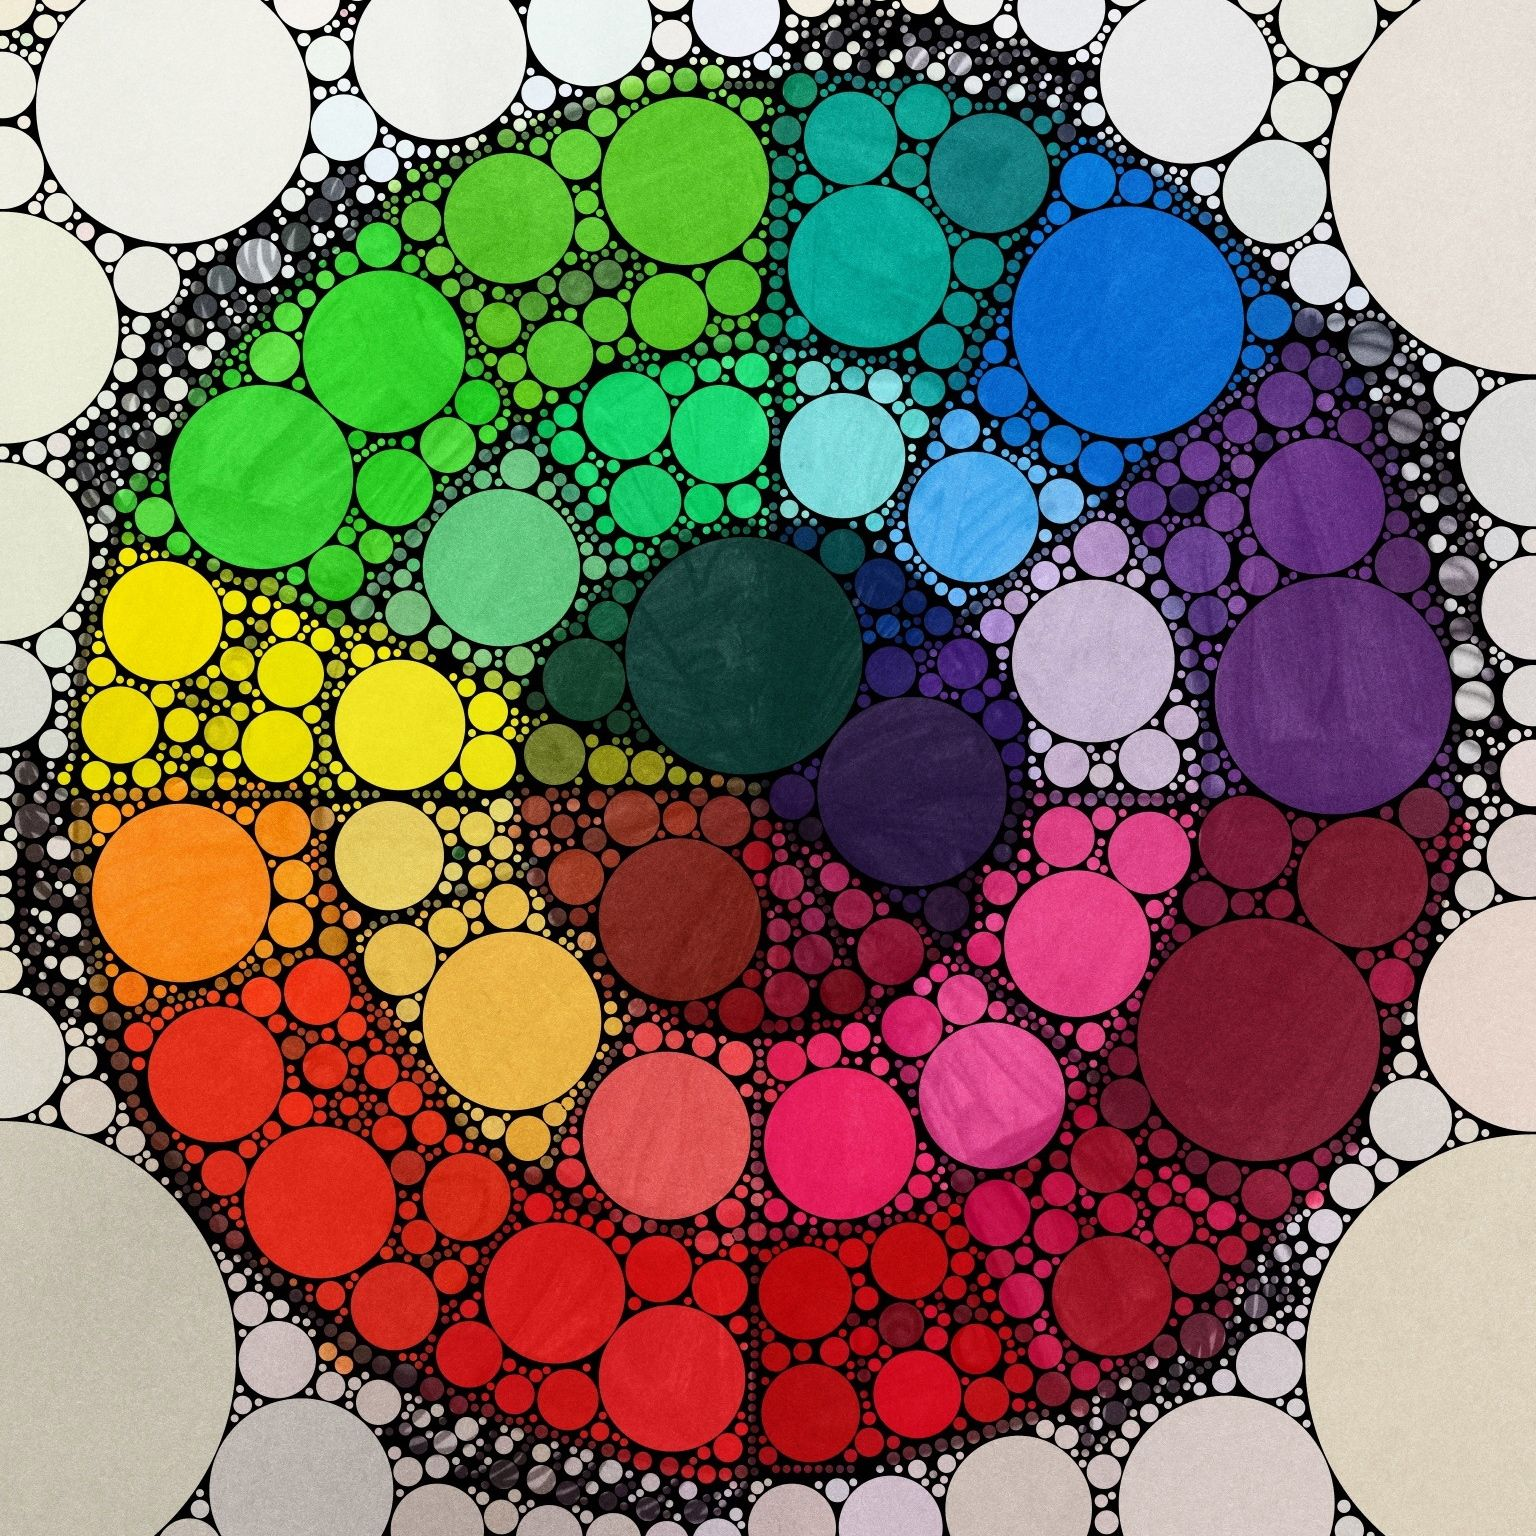 Color theory online games - Color Theory Art Projects Updated Color Wheels